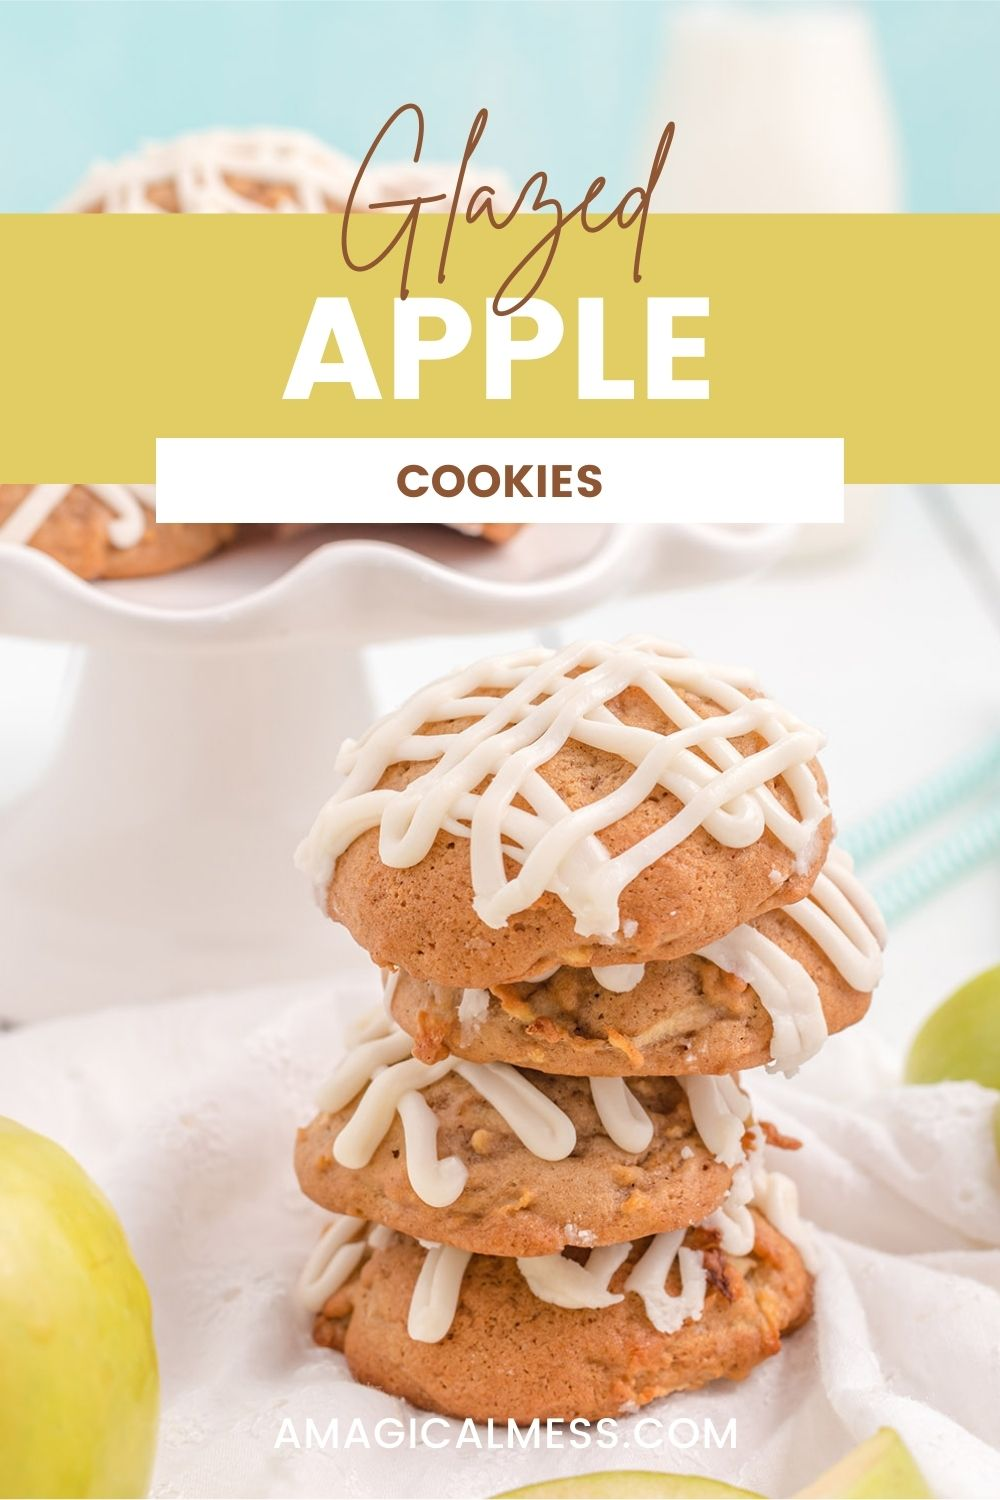 A stack of apple cookies with a glaze topping on a table with more cookies in the background.